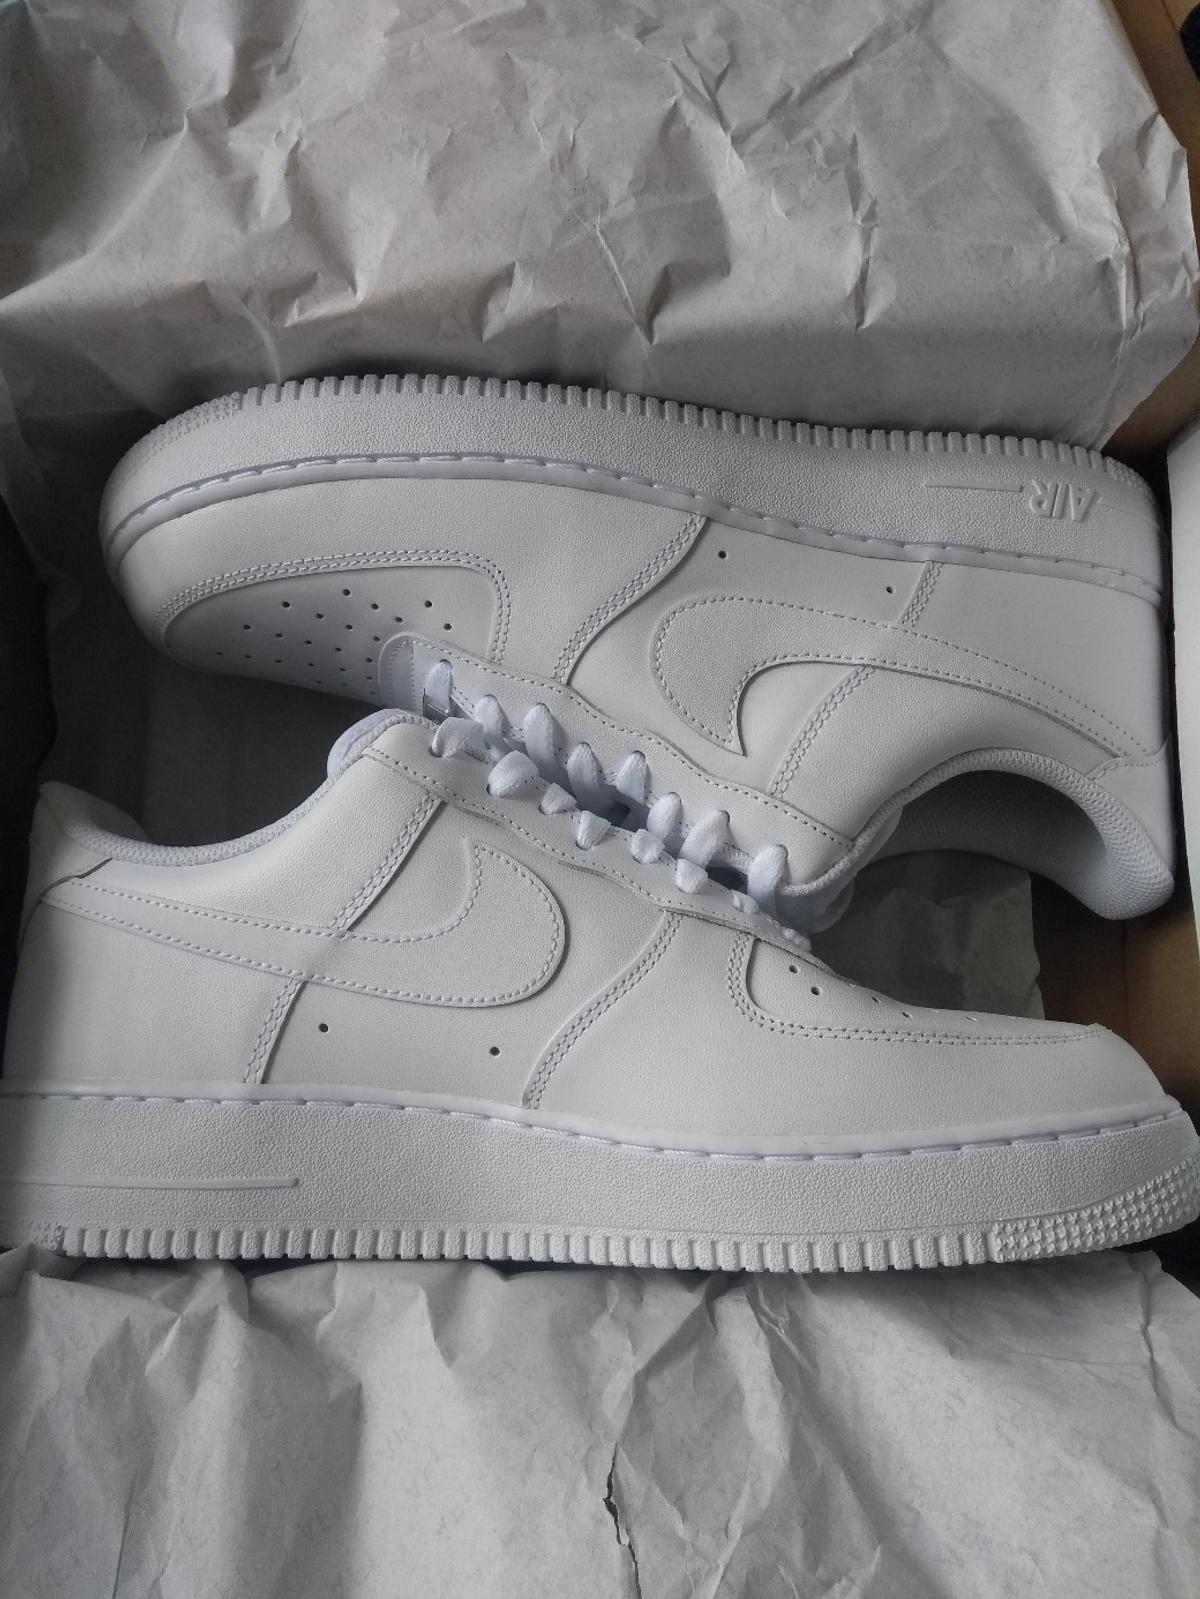 f75c5870 Air Force 1 -Size UK 11 - StockX Authenicated in NW6 Brent for ...